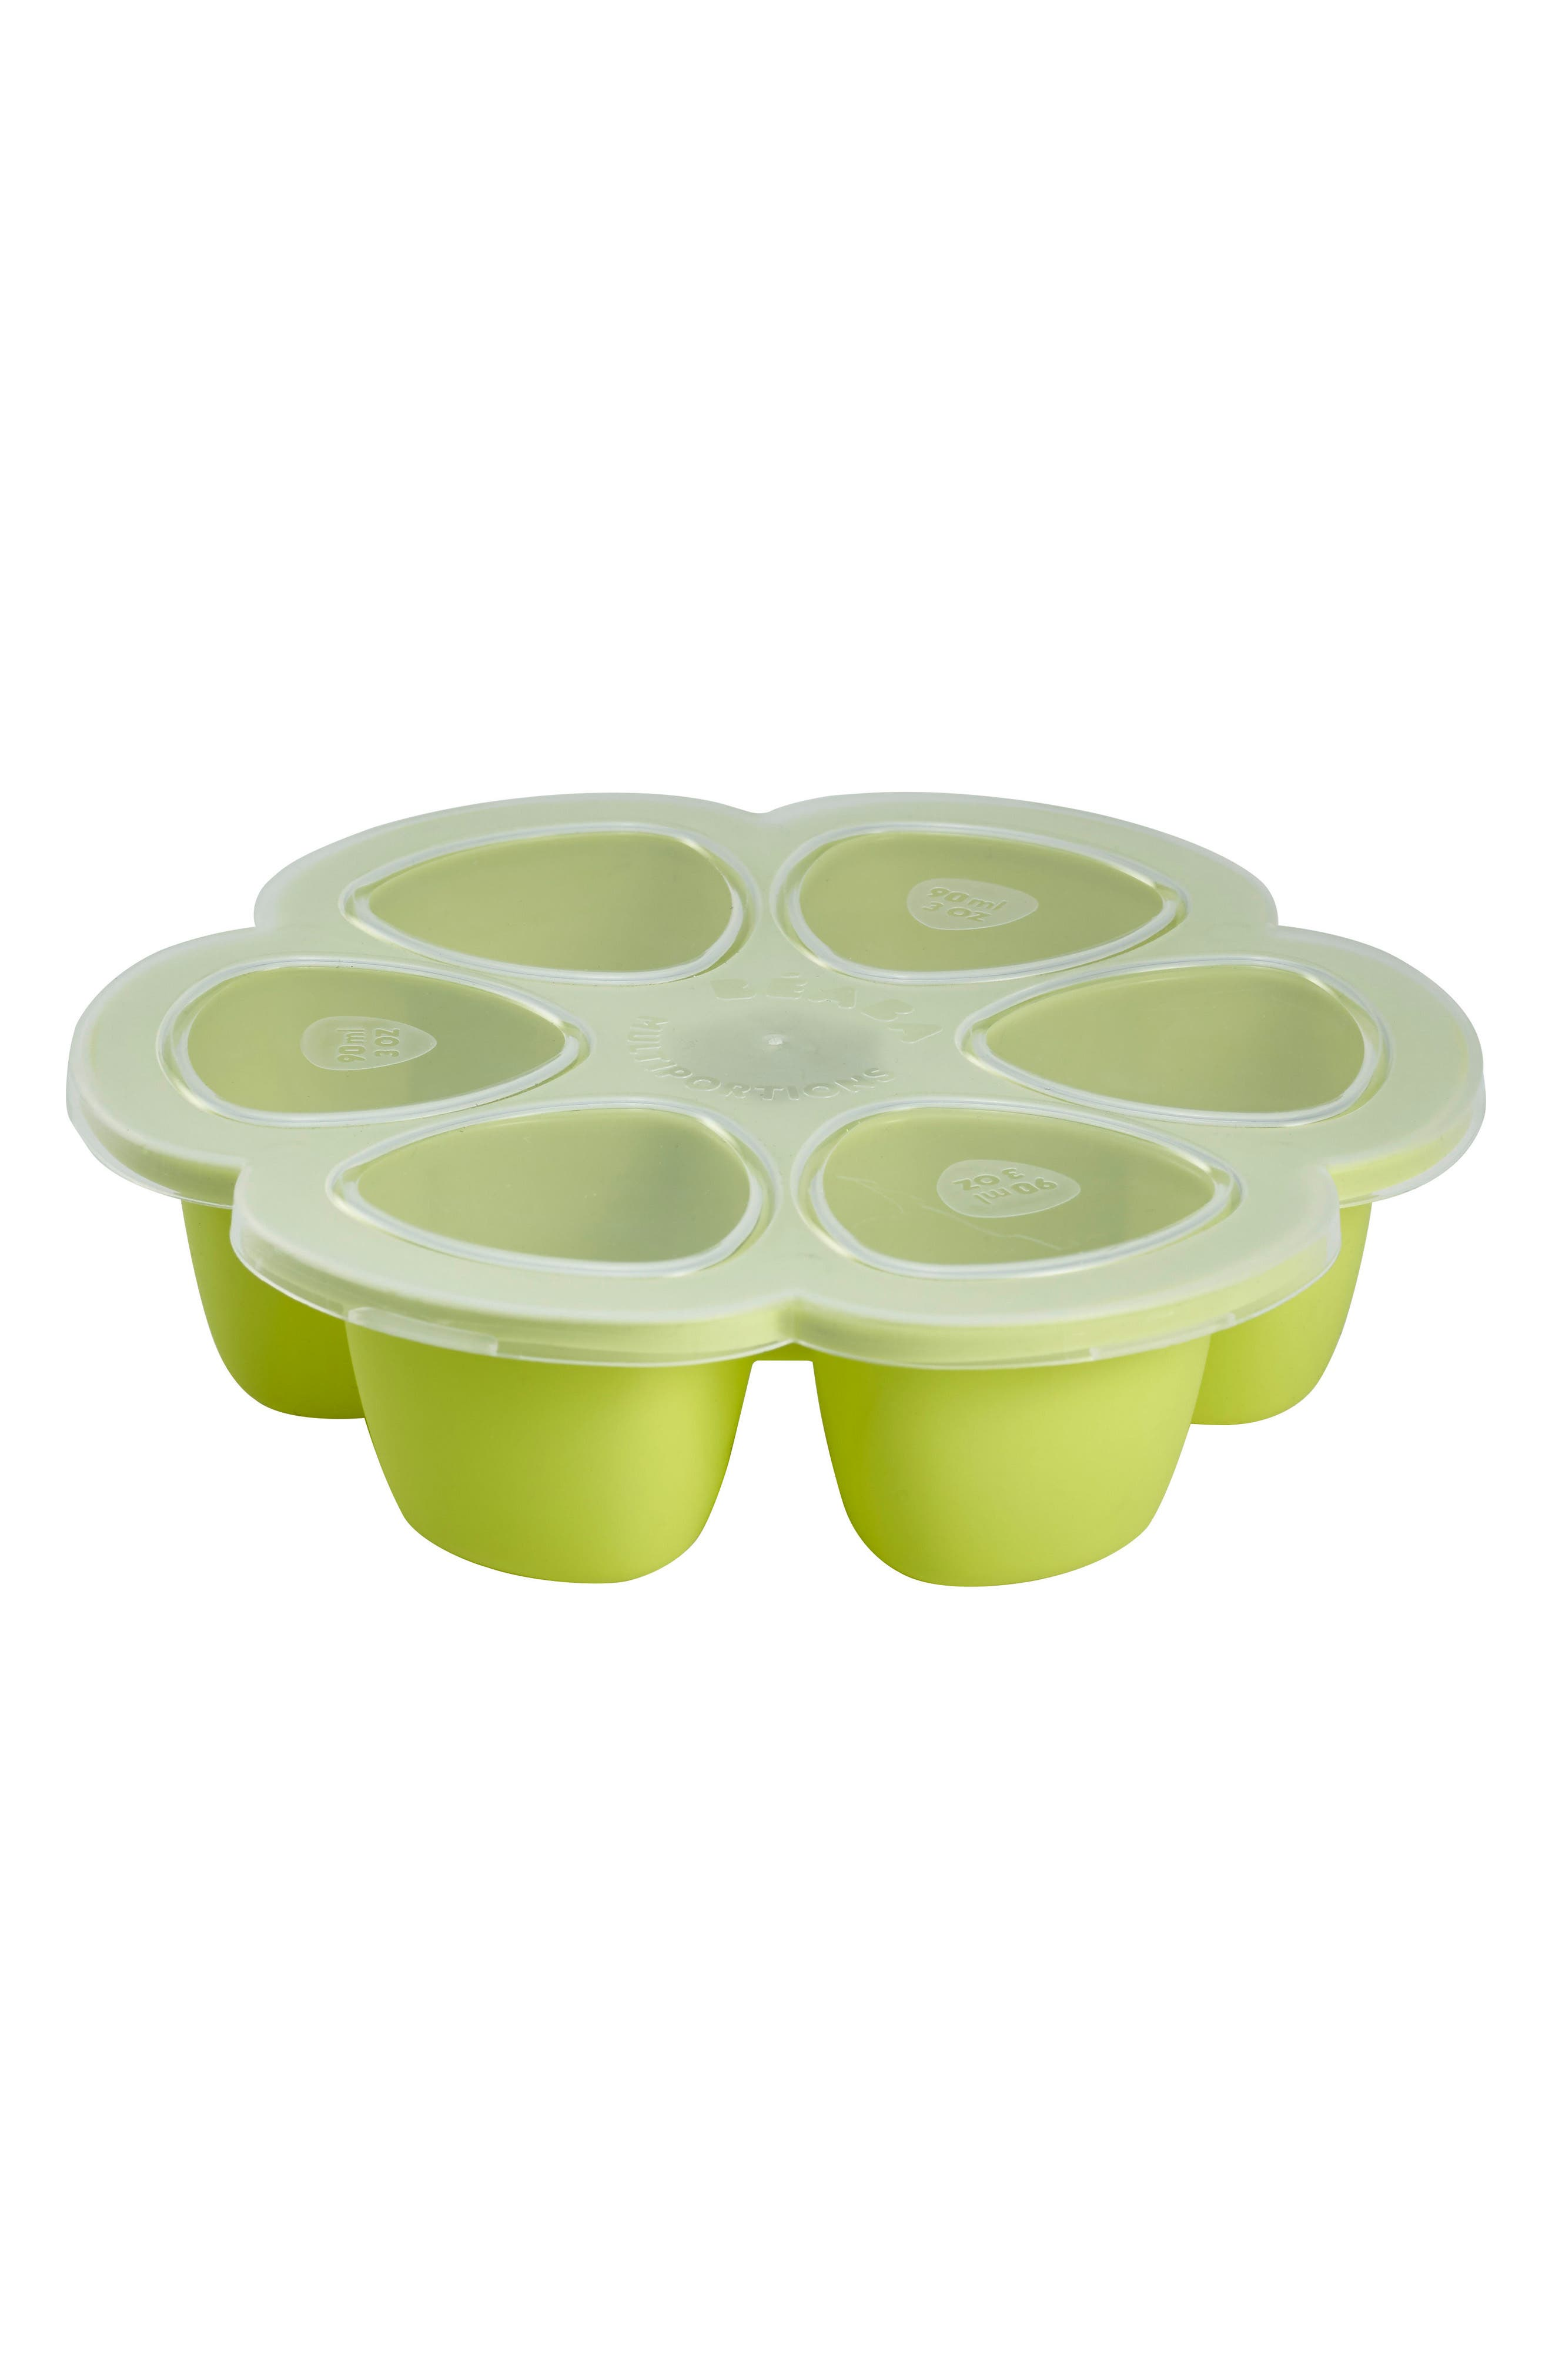 'Multiportions<sup>™</sup>' Silicone 5 oz. Food Cup Tray,                         Main,                         color, Neon